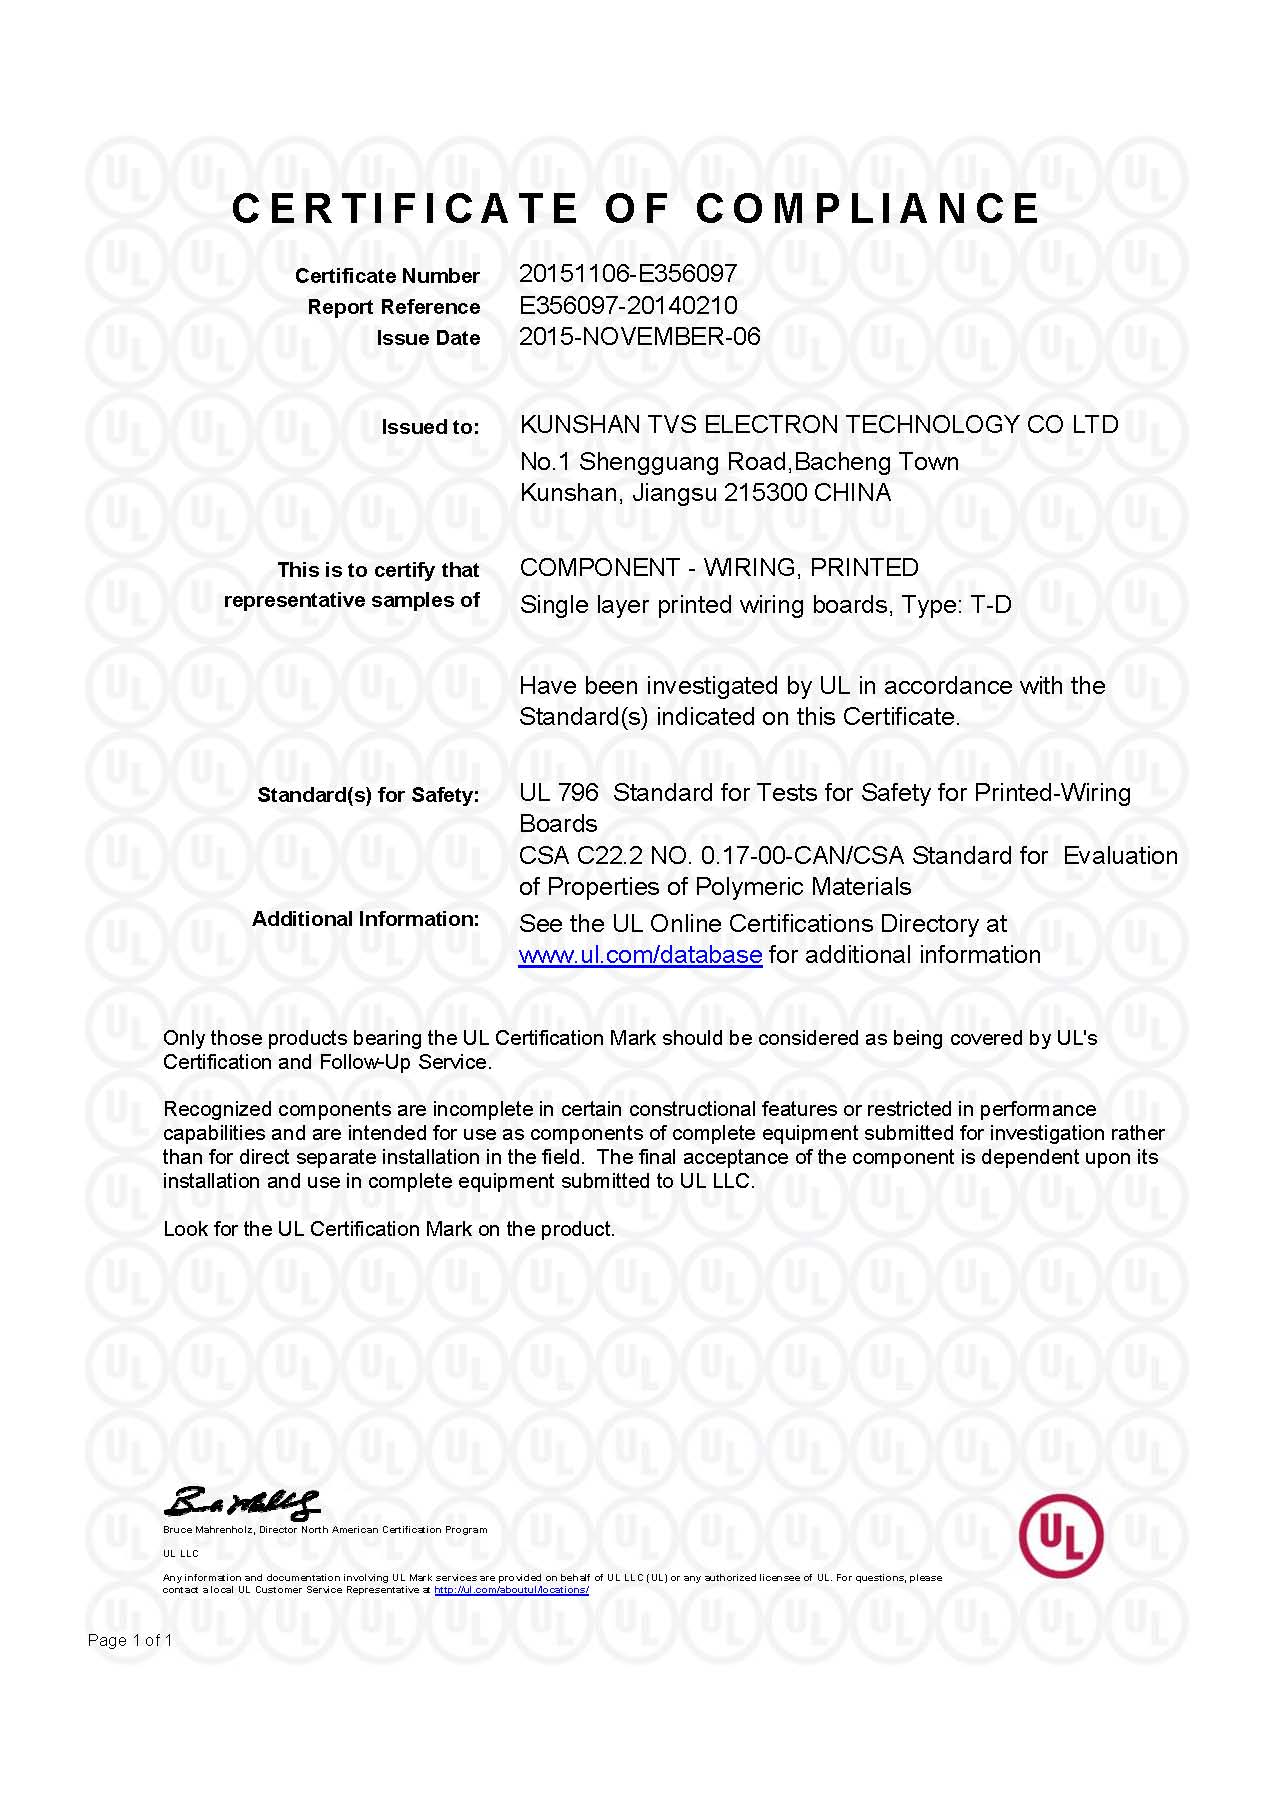 Certifications attained by kunshan hpcb electronic coltd certificate standardul xflitez Gallery